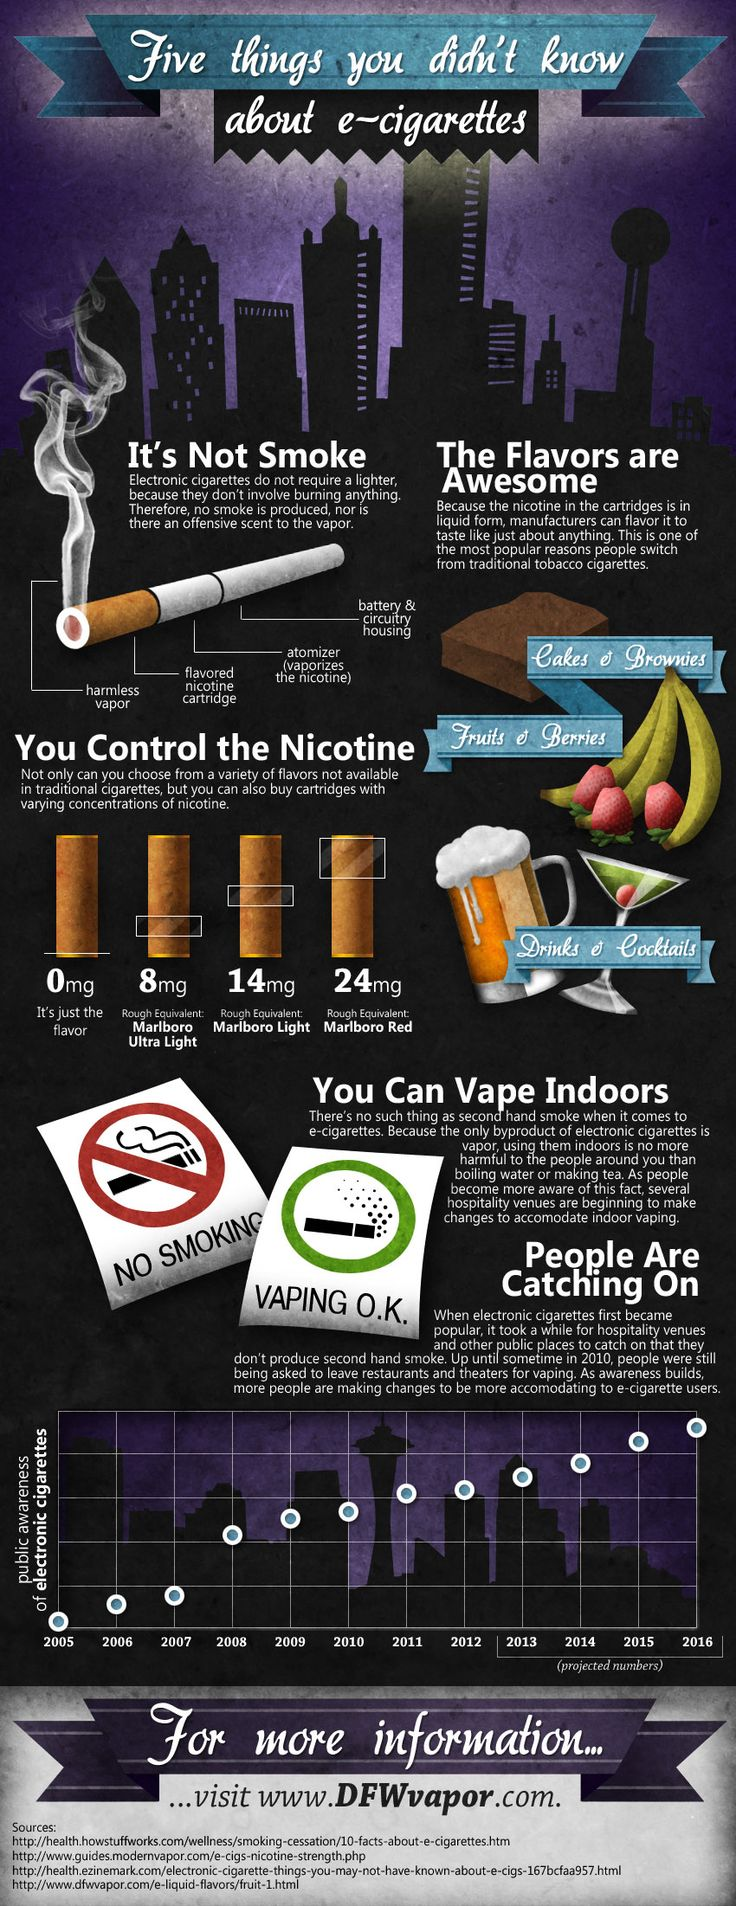 5 Things You Didn't Know About E-Cigarettes